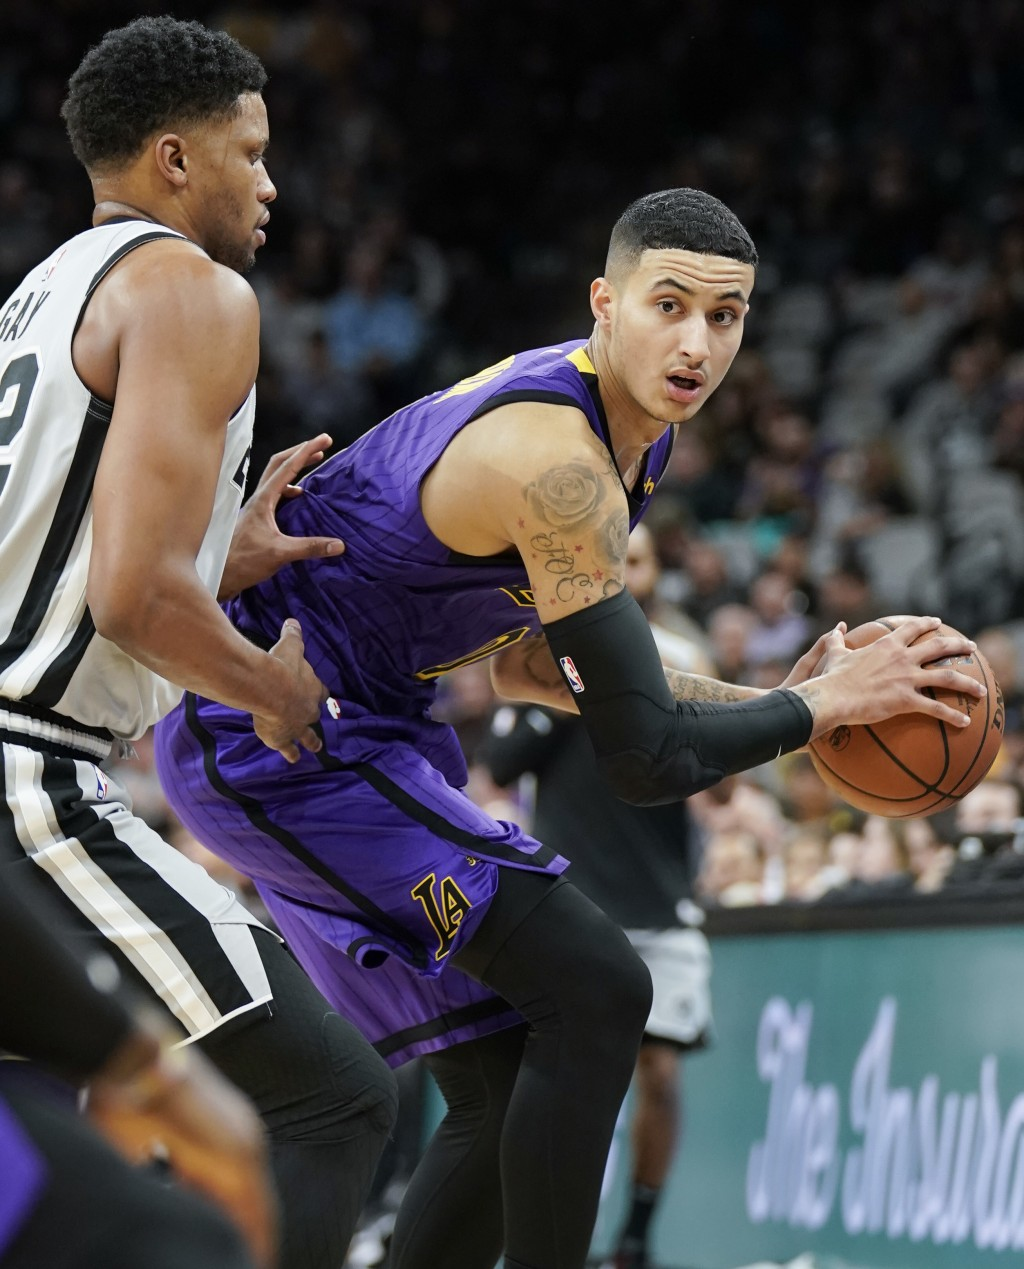 Los Angeles Lakers' Kyle Kuzma, right, looks to pass the ball as San Antonio Spurs' Rudy Gay defends during the first half of an NBA basketball game F